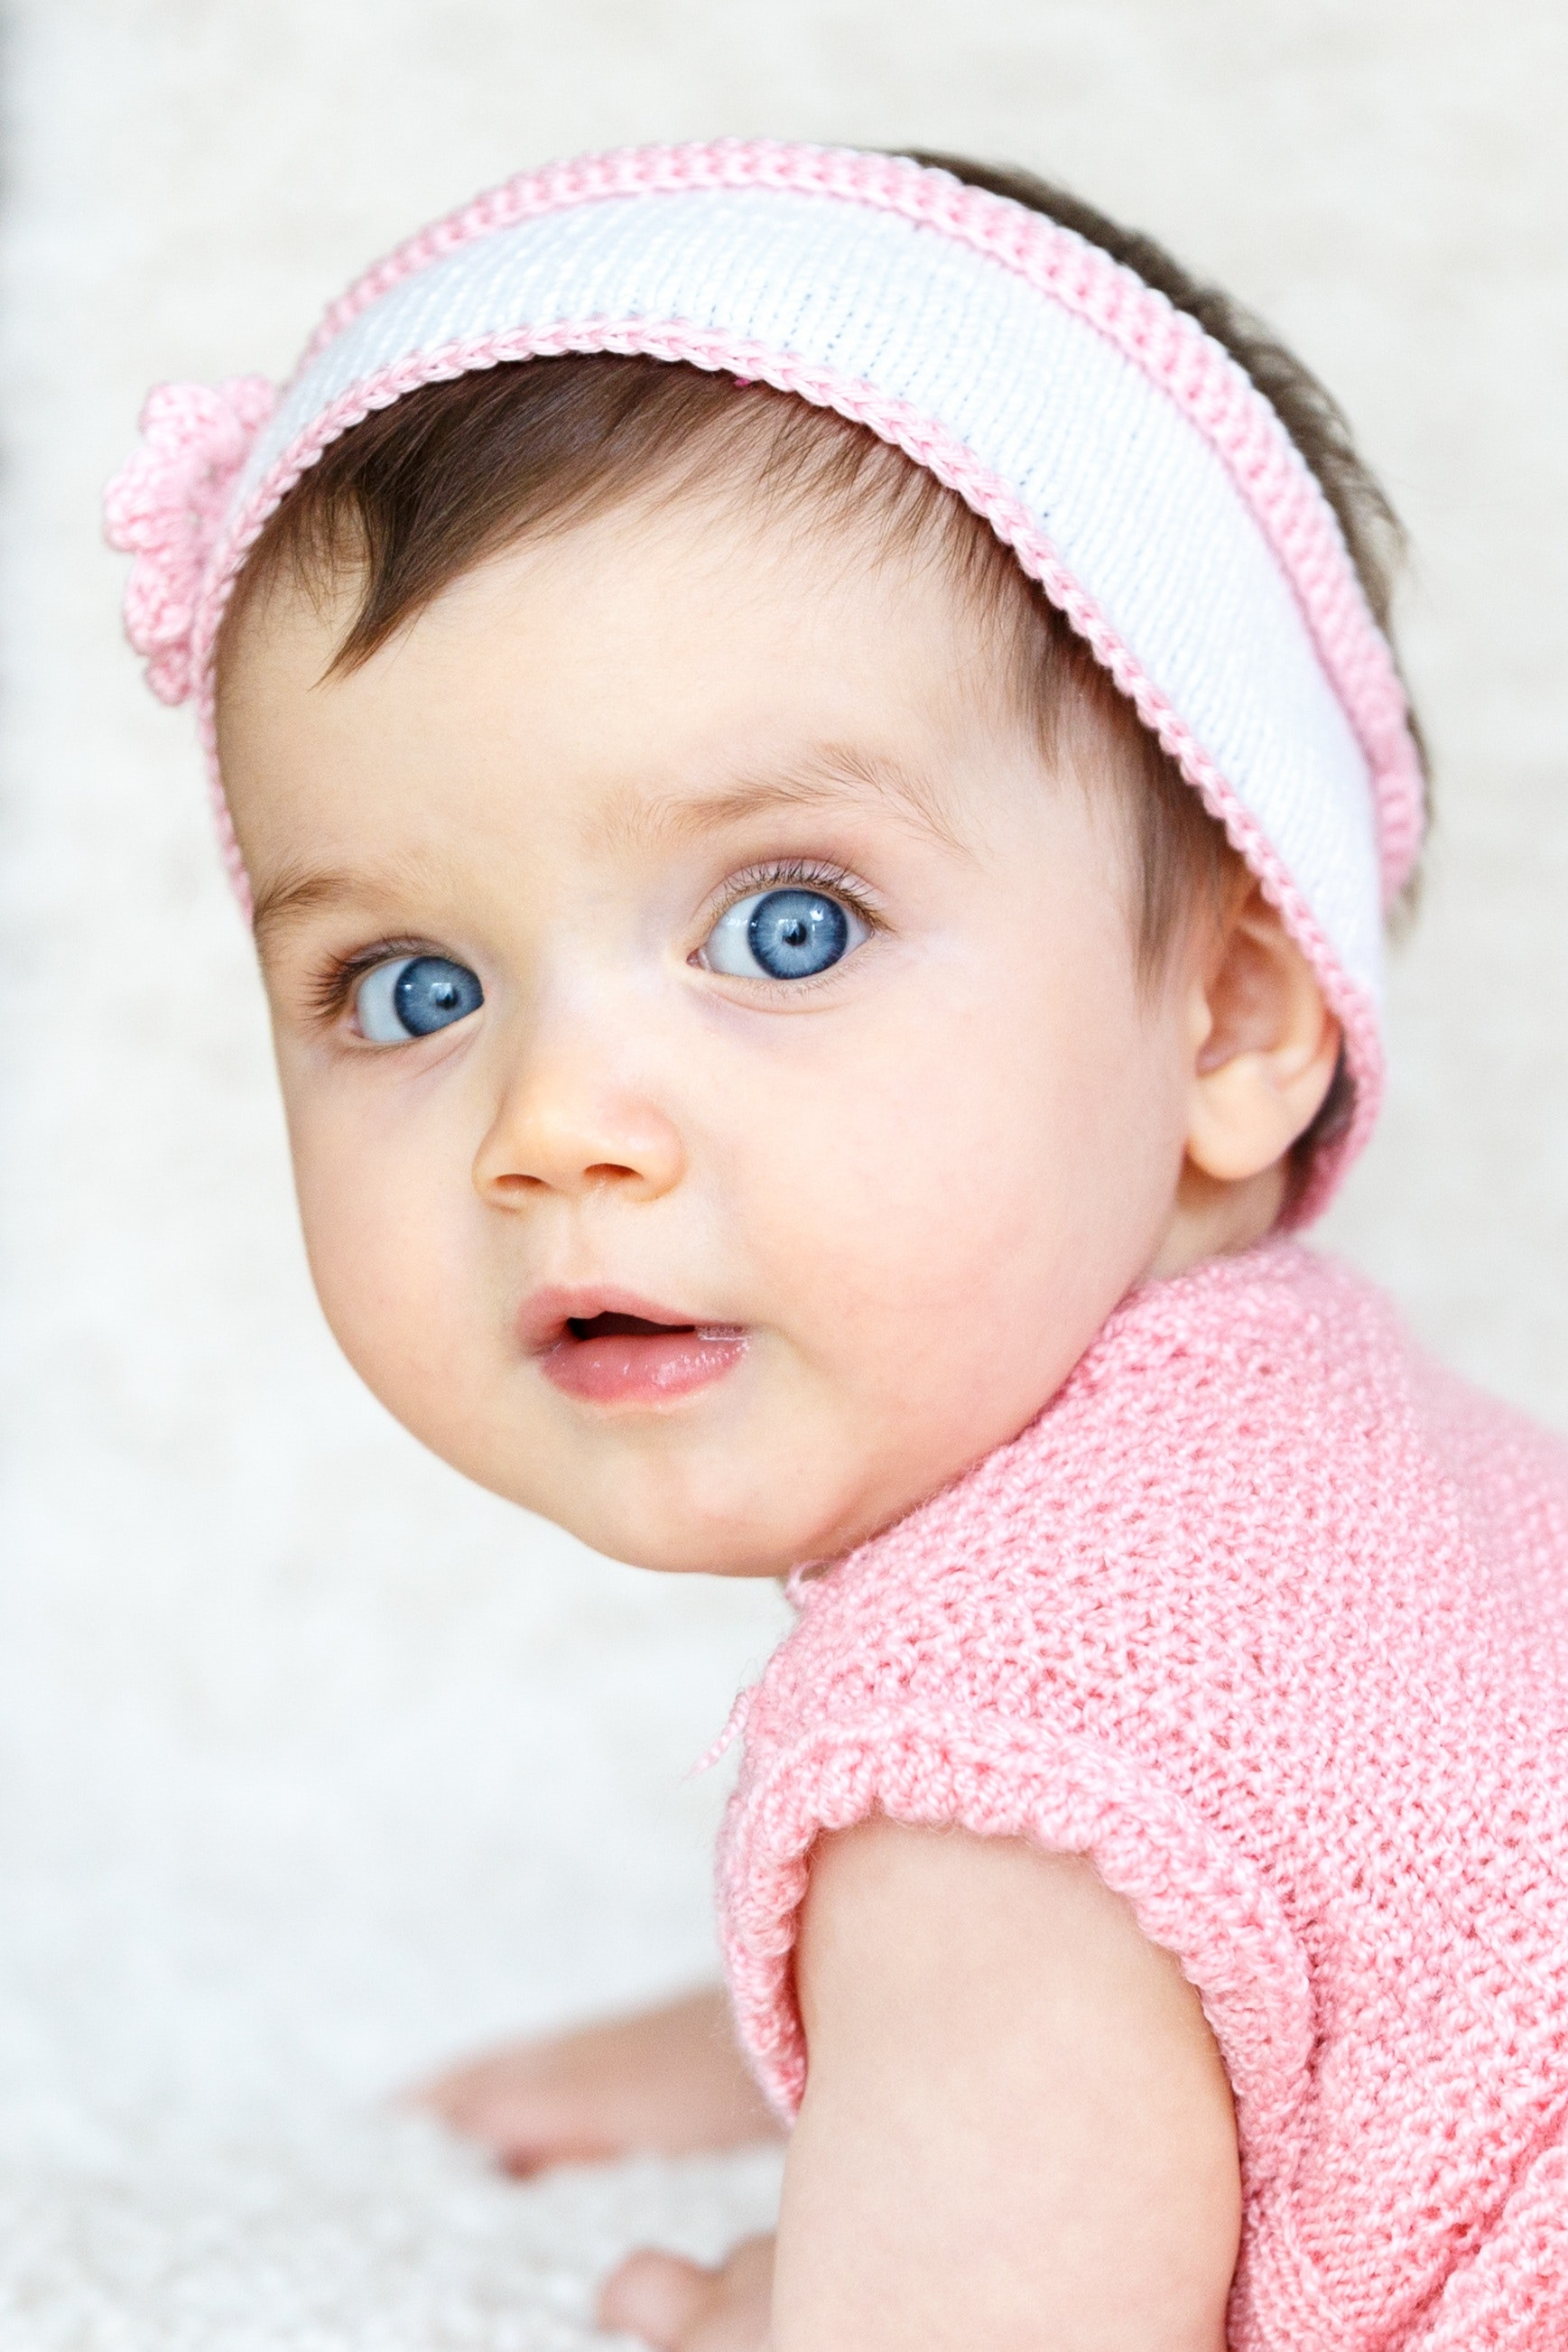 Pin by anna boelter on babies and children Blue eyed baby Cute